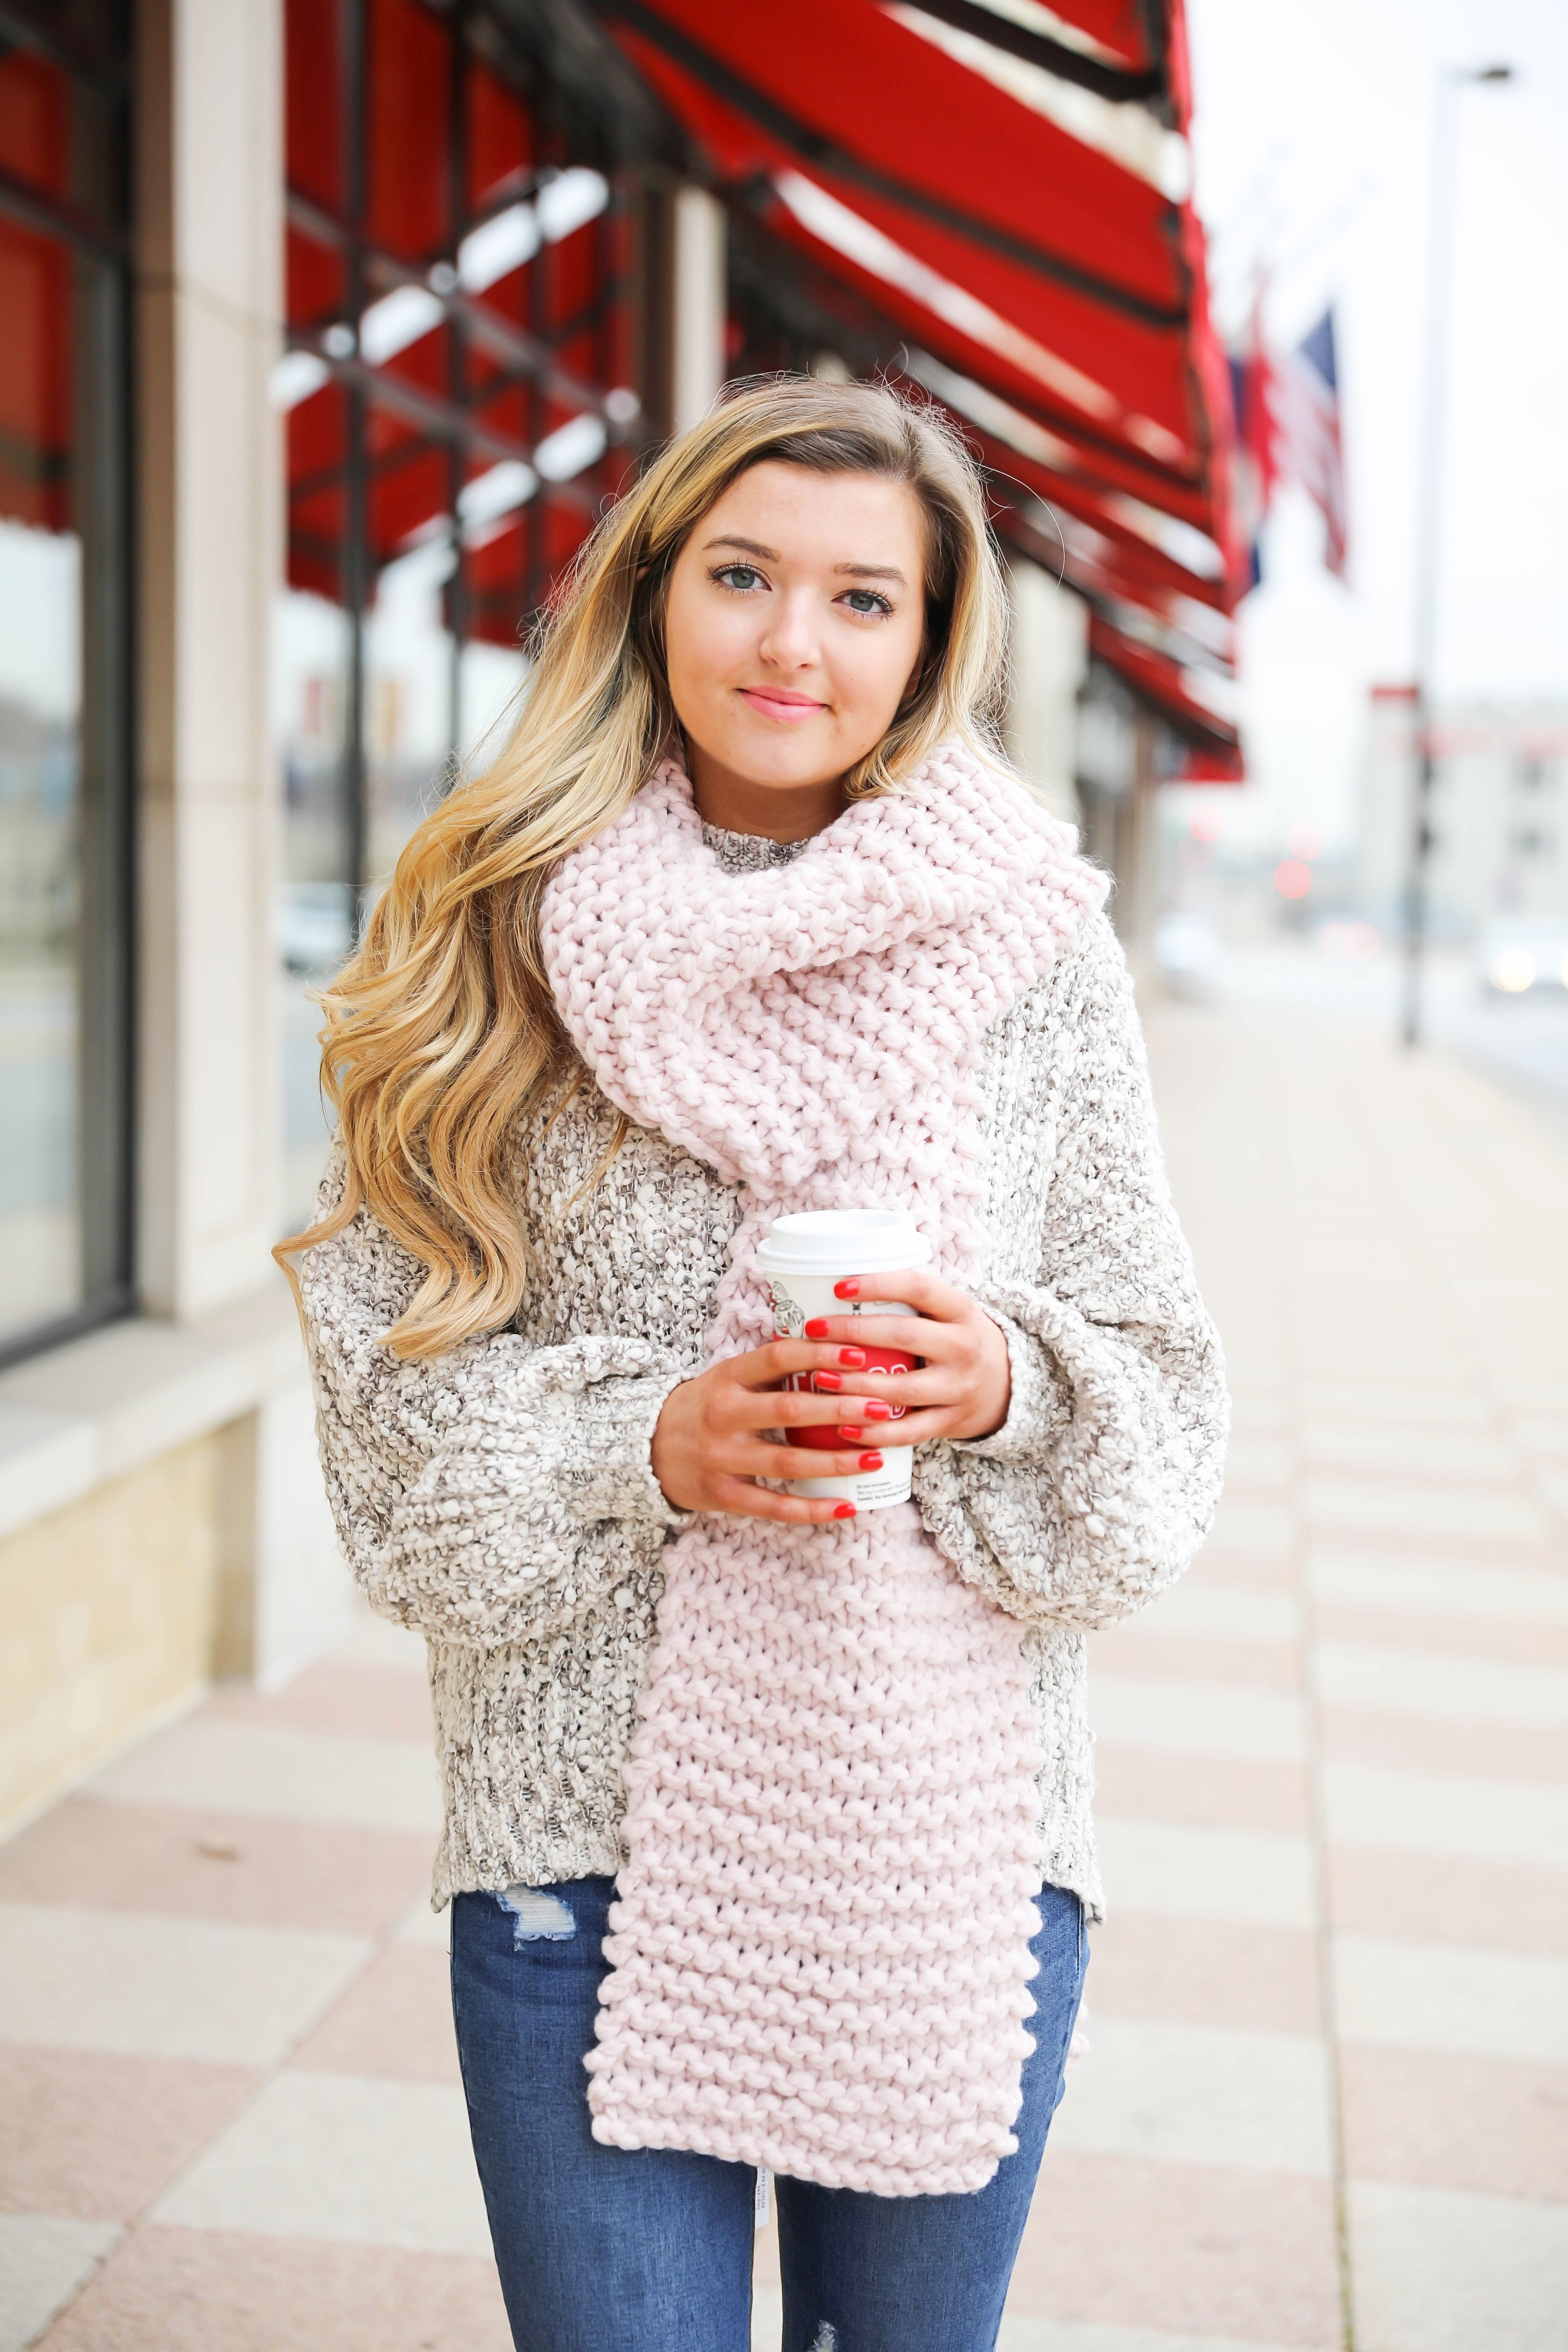 Huge knit scarf and cozy knit sweater with frye riding boots! Such a super cute winter outfit idea! Red cup from Starbucks with a cute winter outfit! Details on fashion blog daily dose of charm lauren lindmark